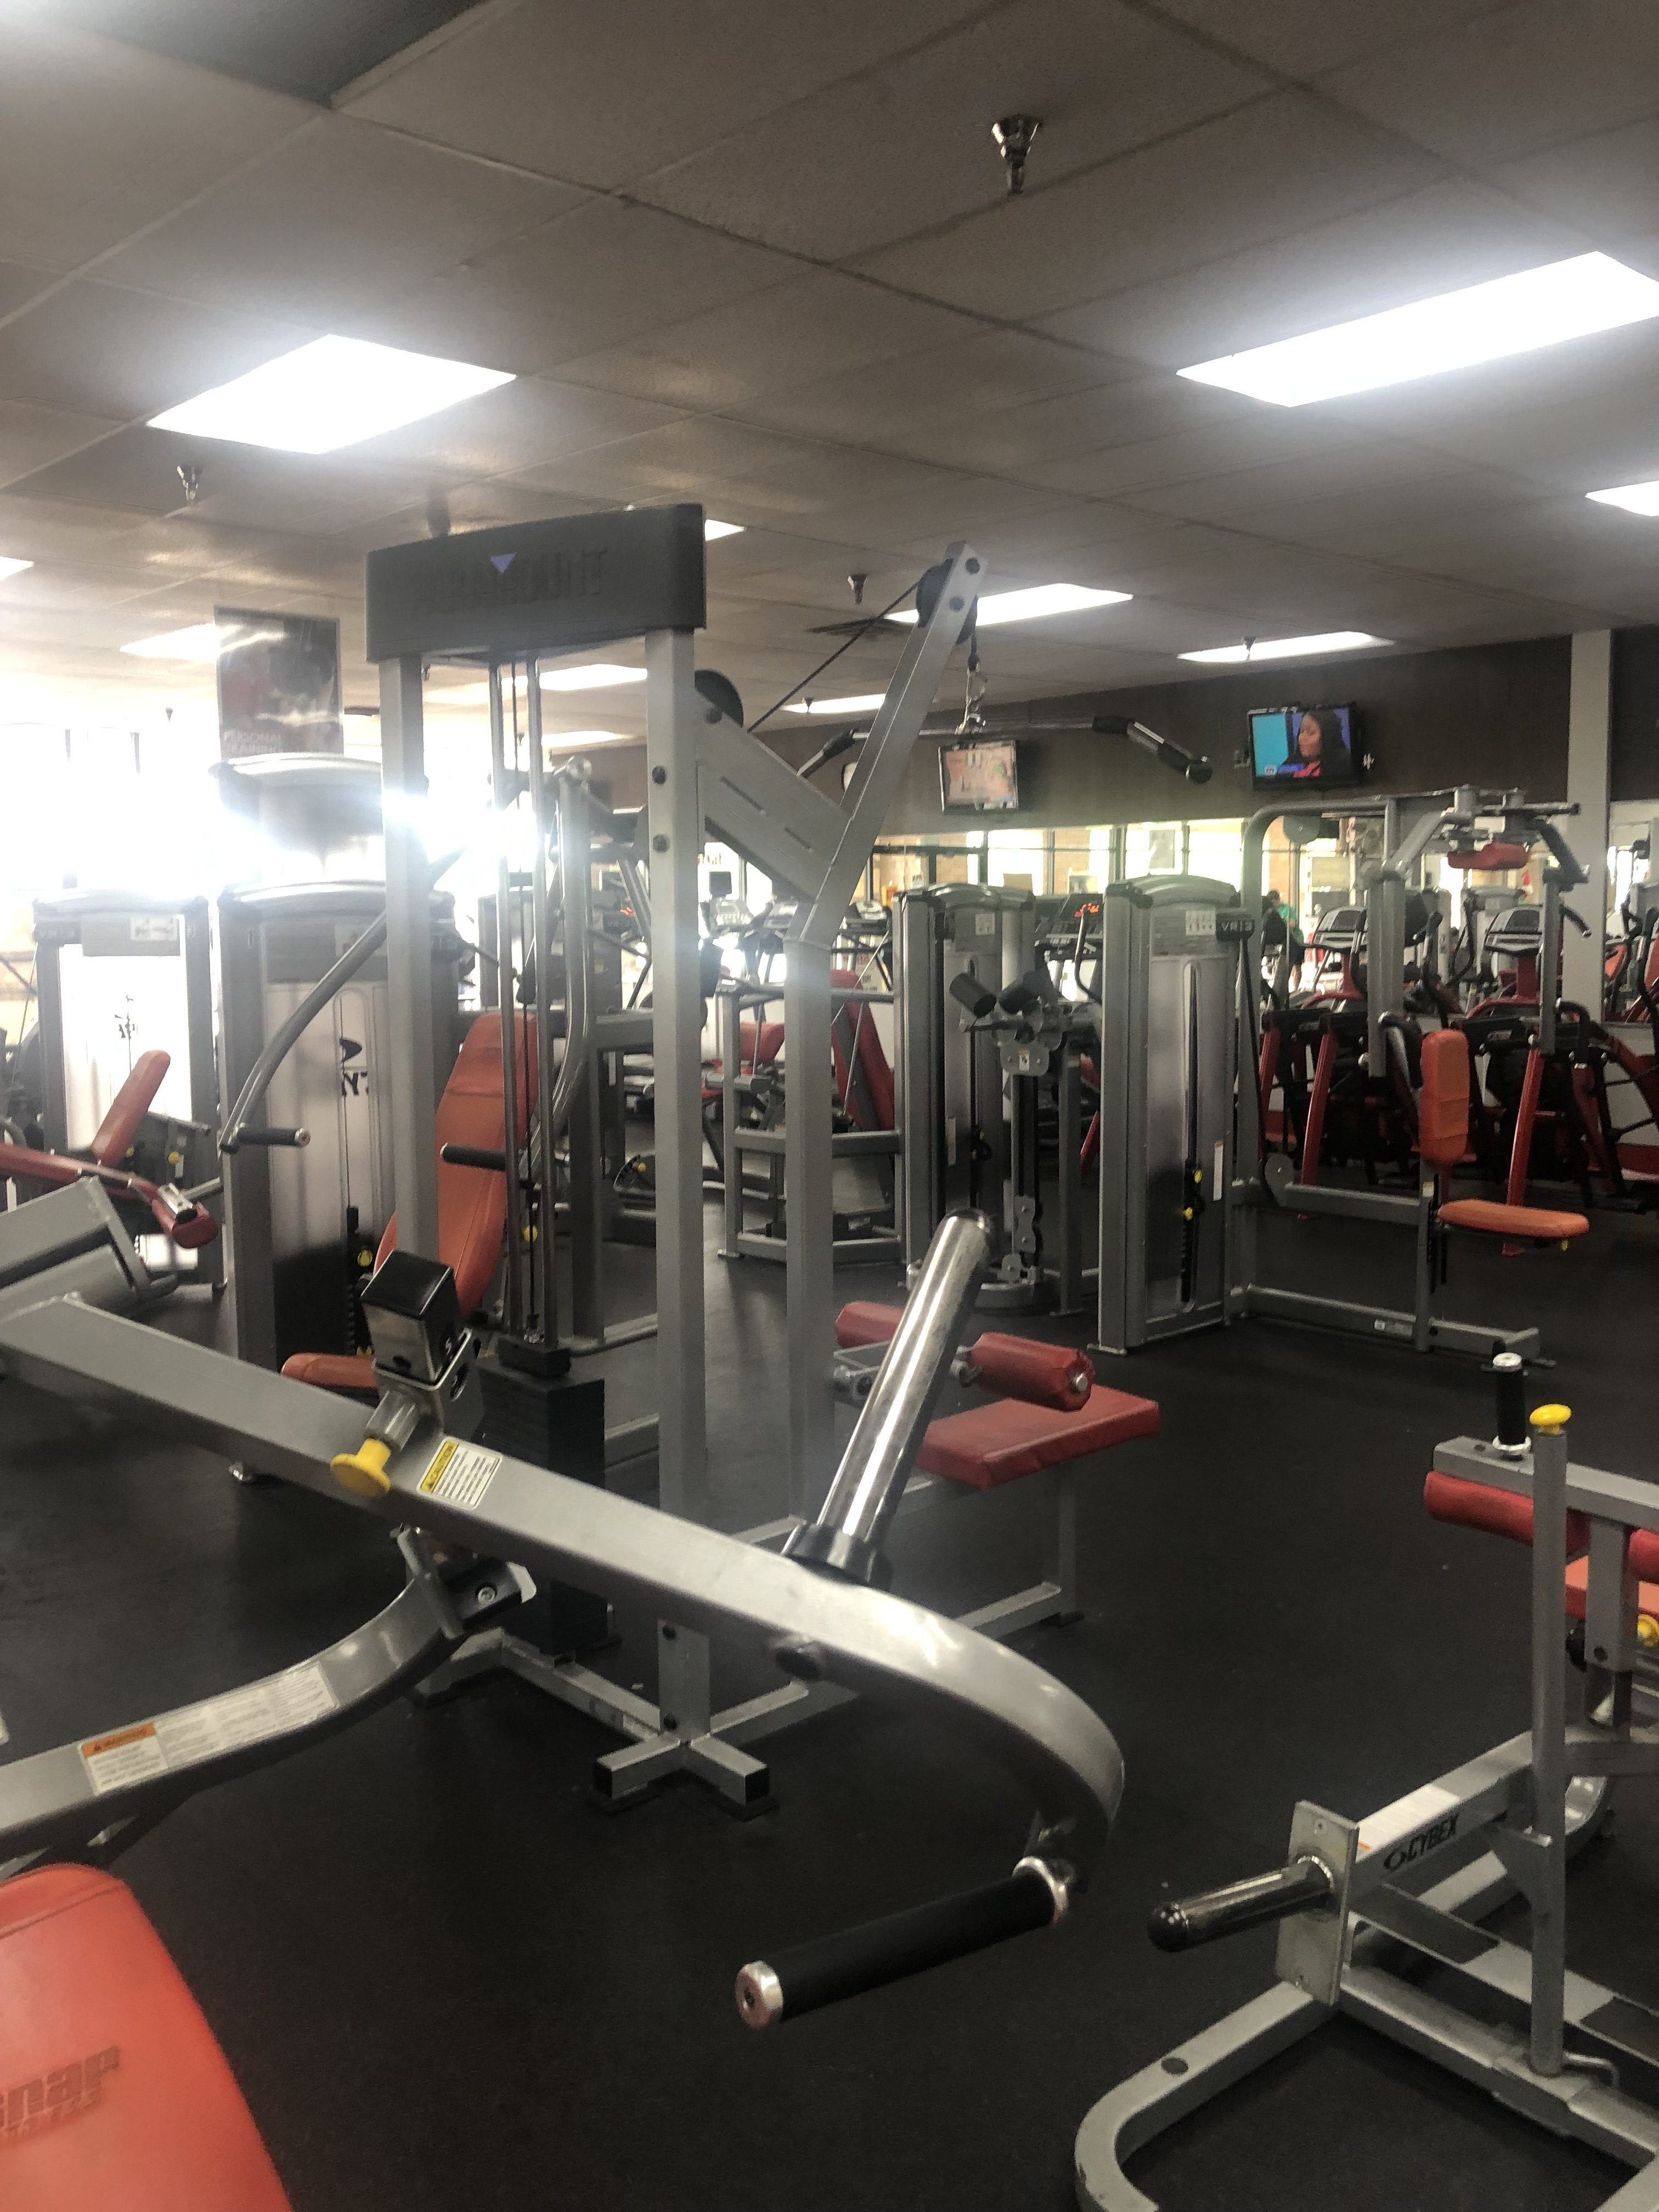 Absolute Auction – Fitness Center Going Out of Business Sale | 147 Lincoln Trail Blvd. | Saturday, July 20th @ 2:00 pm EDT